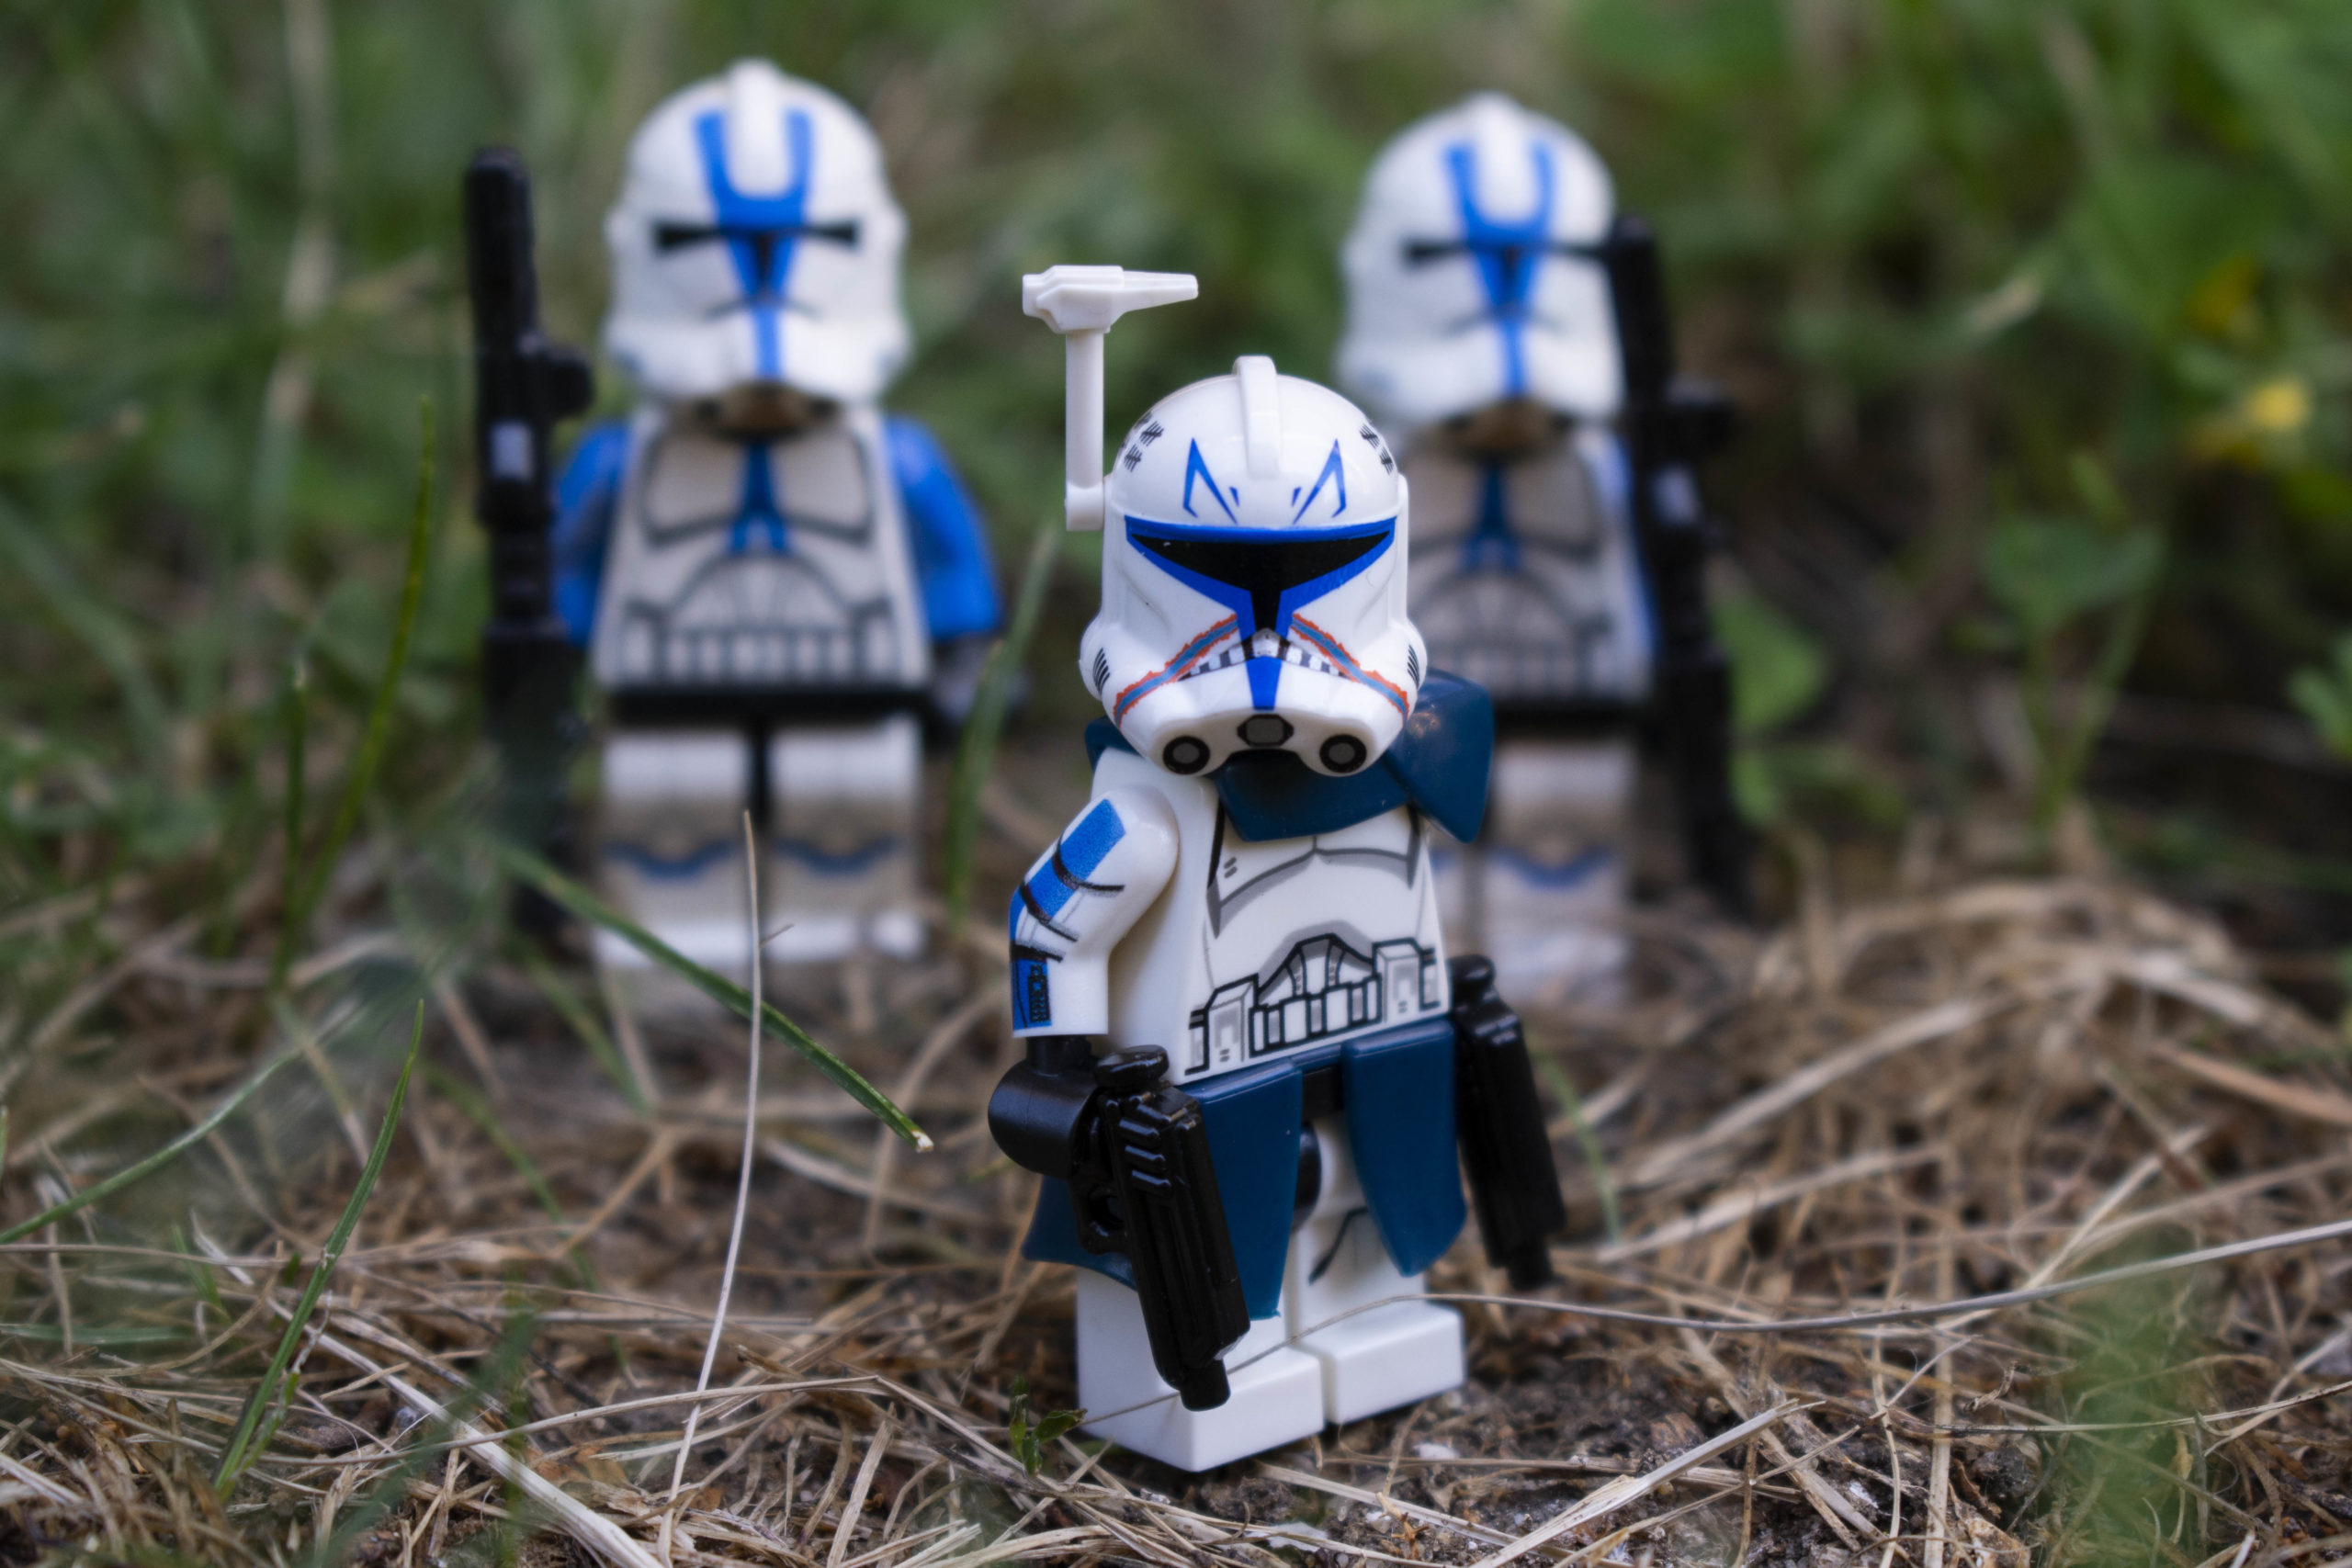 Clone Trooper Minifigure of Captain Rex and 501st Troopers